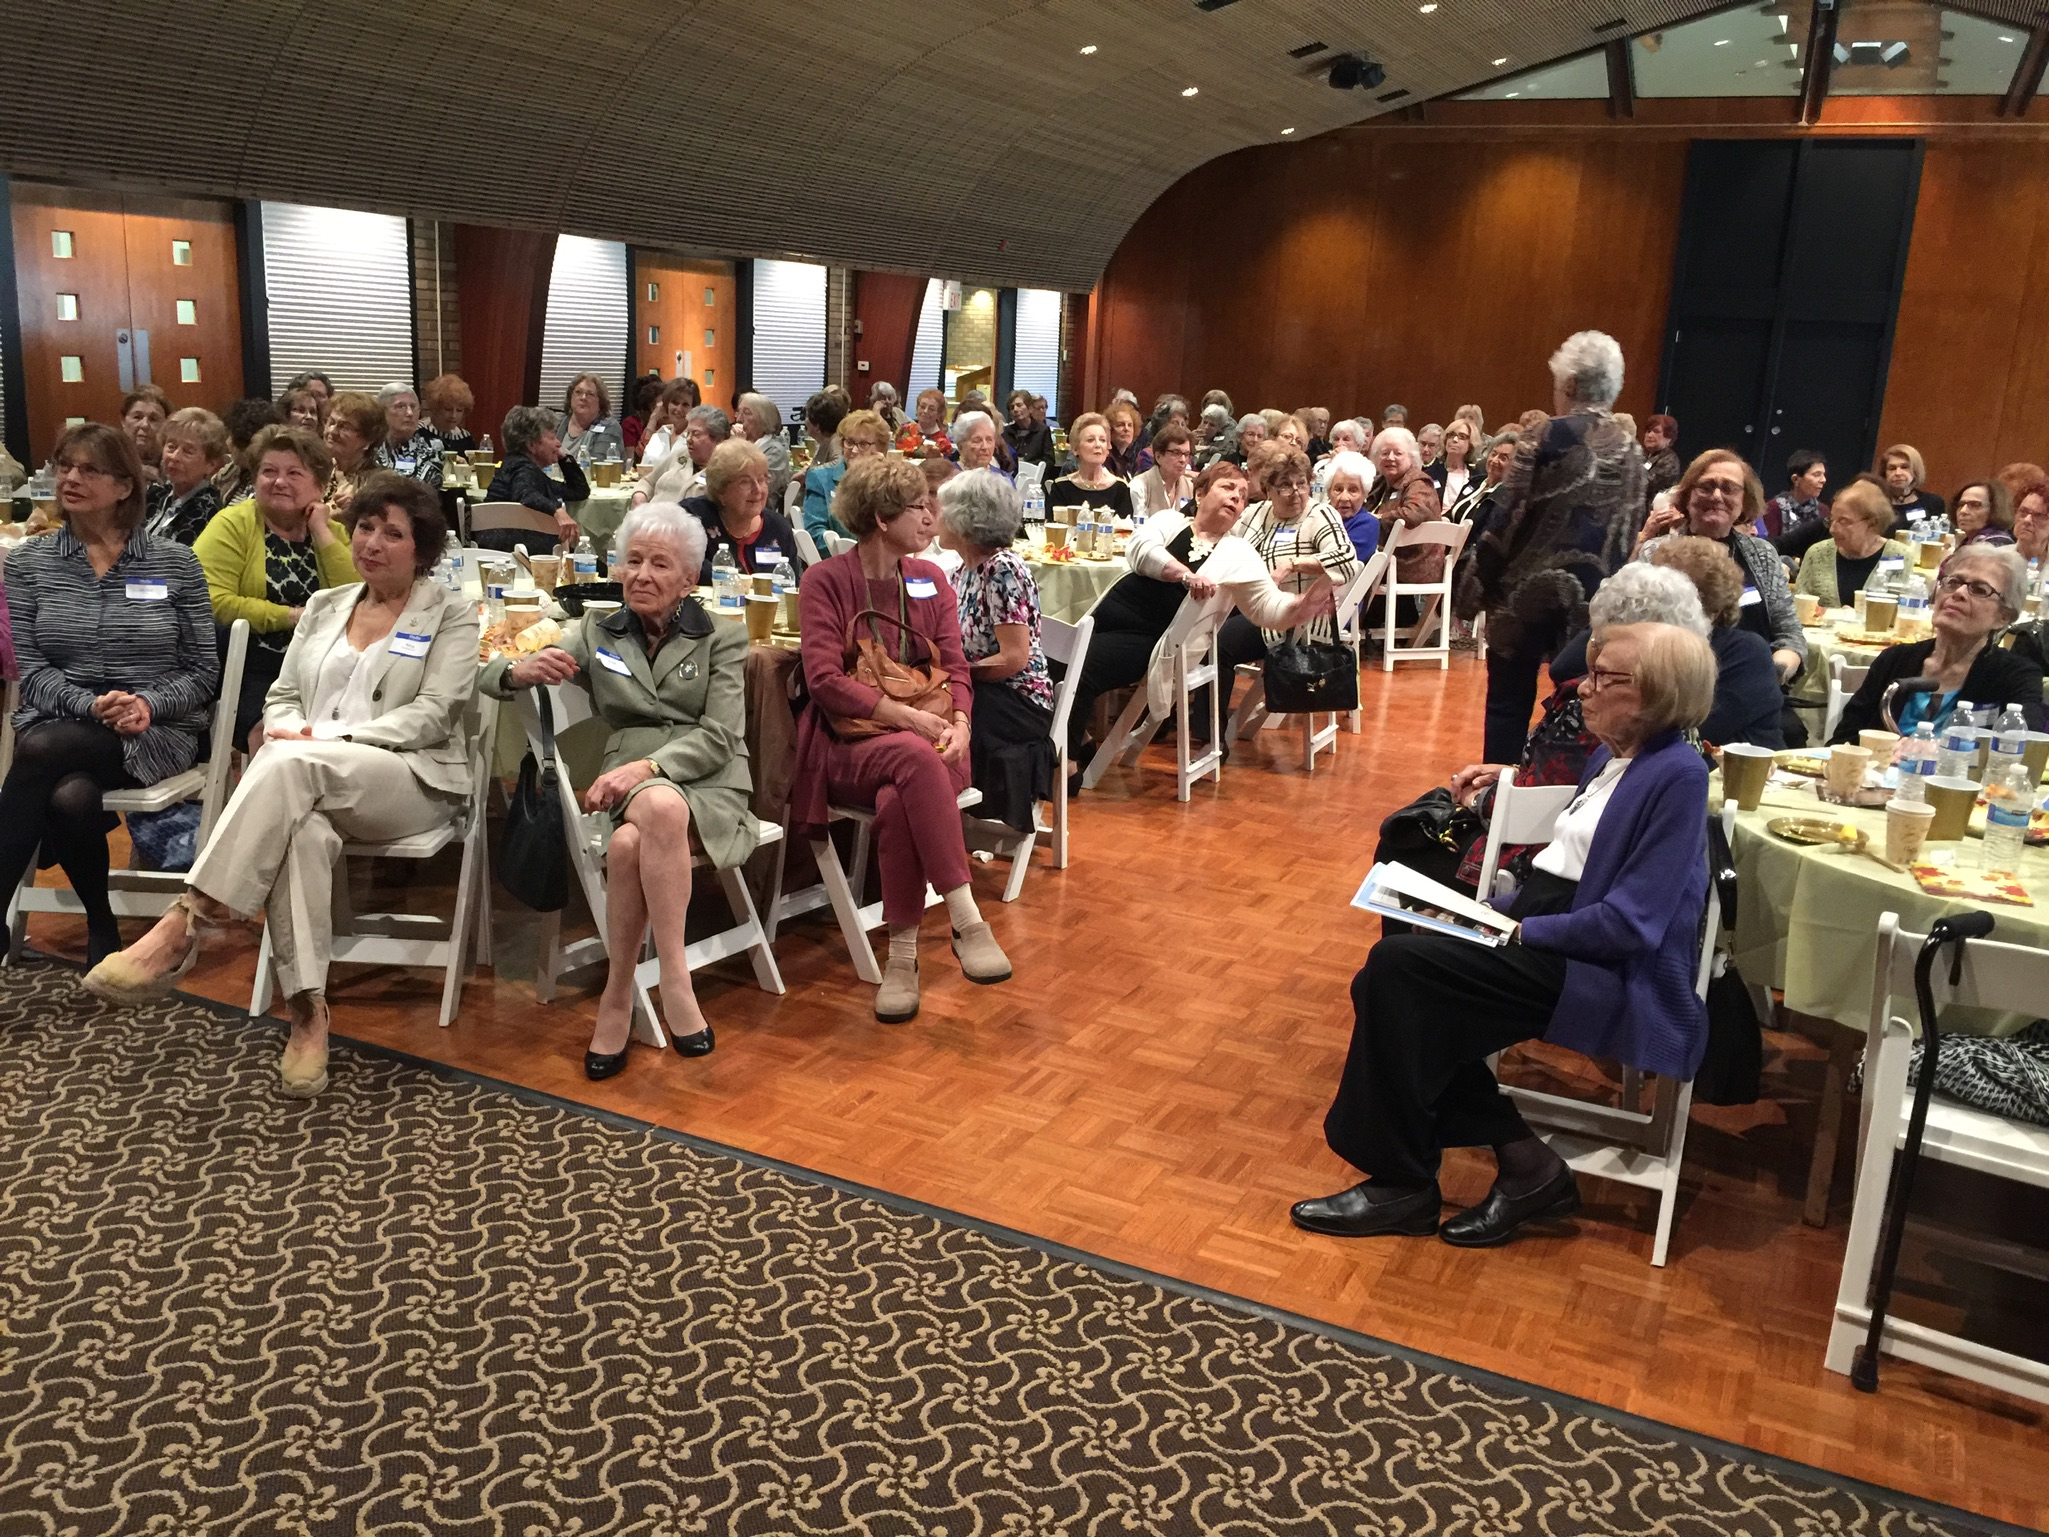 ncjw bcs members gathered together for annual luncheon